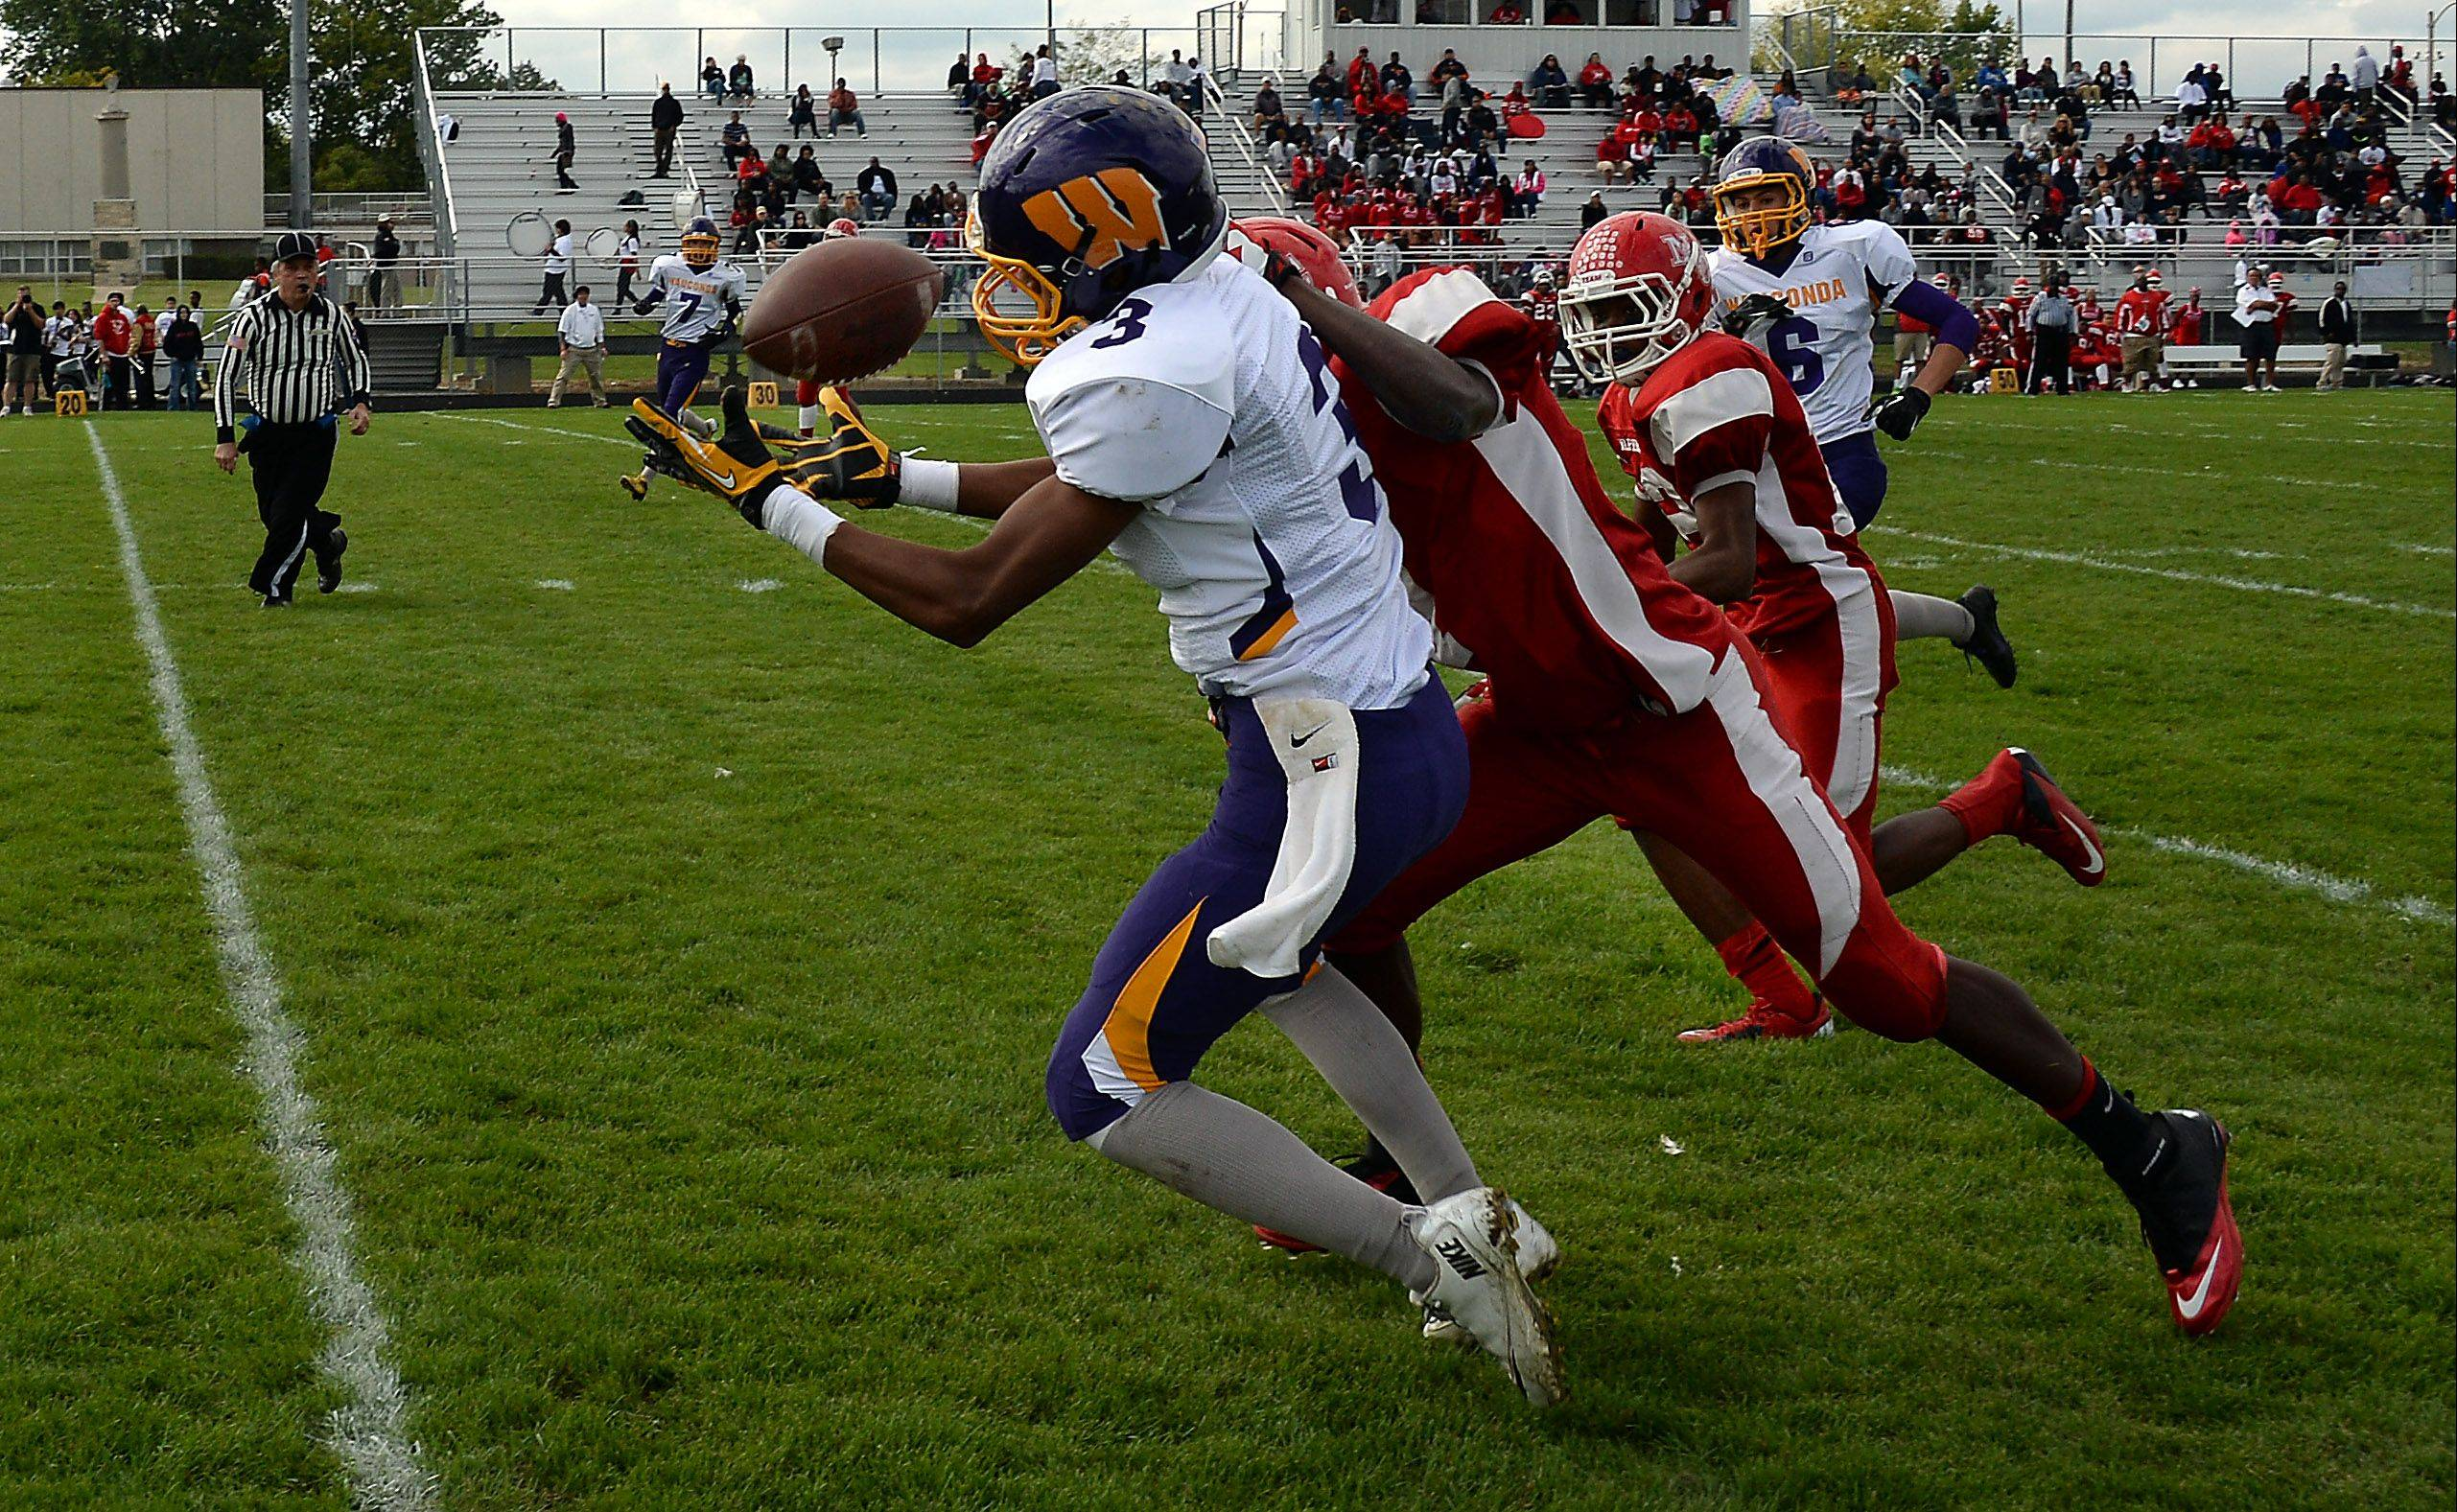 Wauconda's Josh Anderson hauls in a pass play despite pressure from North Chicago's Brandon Coofer in the second quarter for major yardage at North Chicago on Saturday.